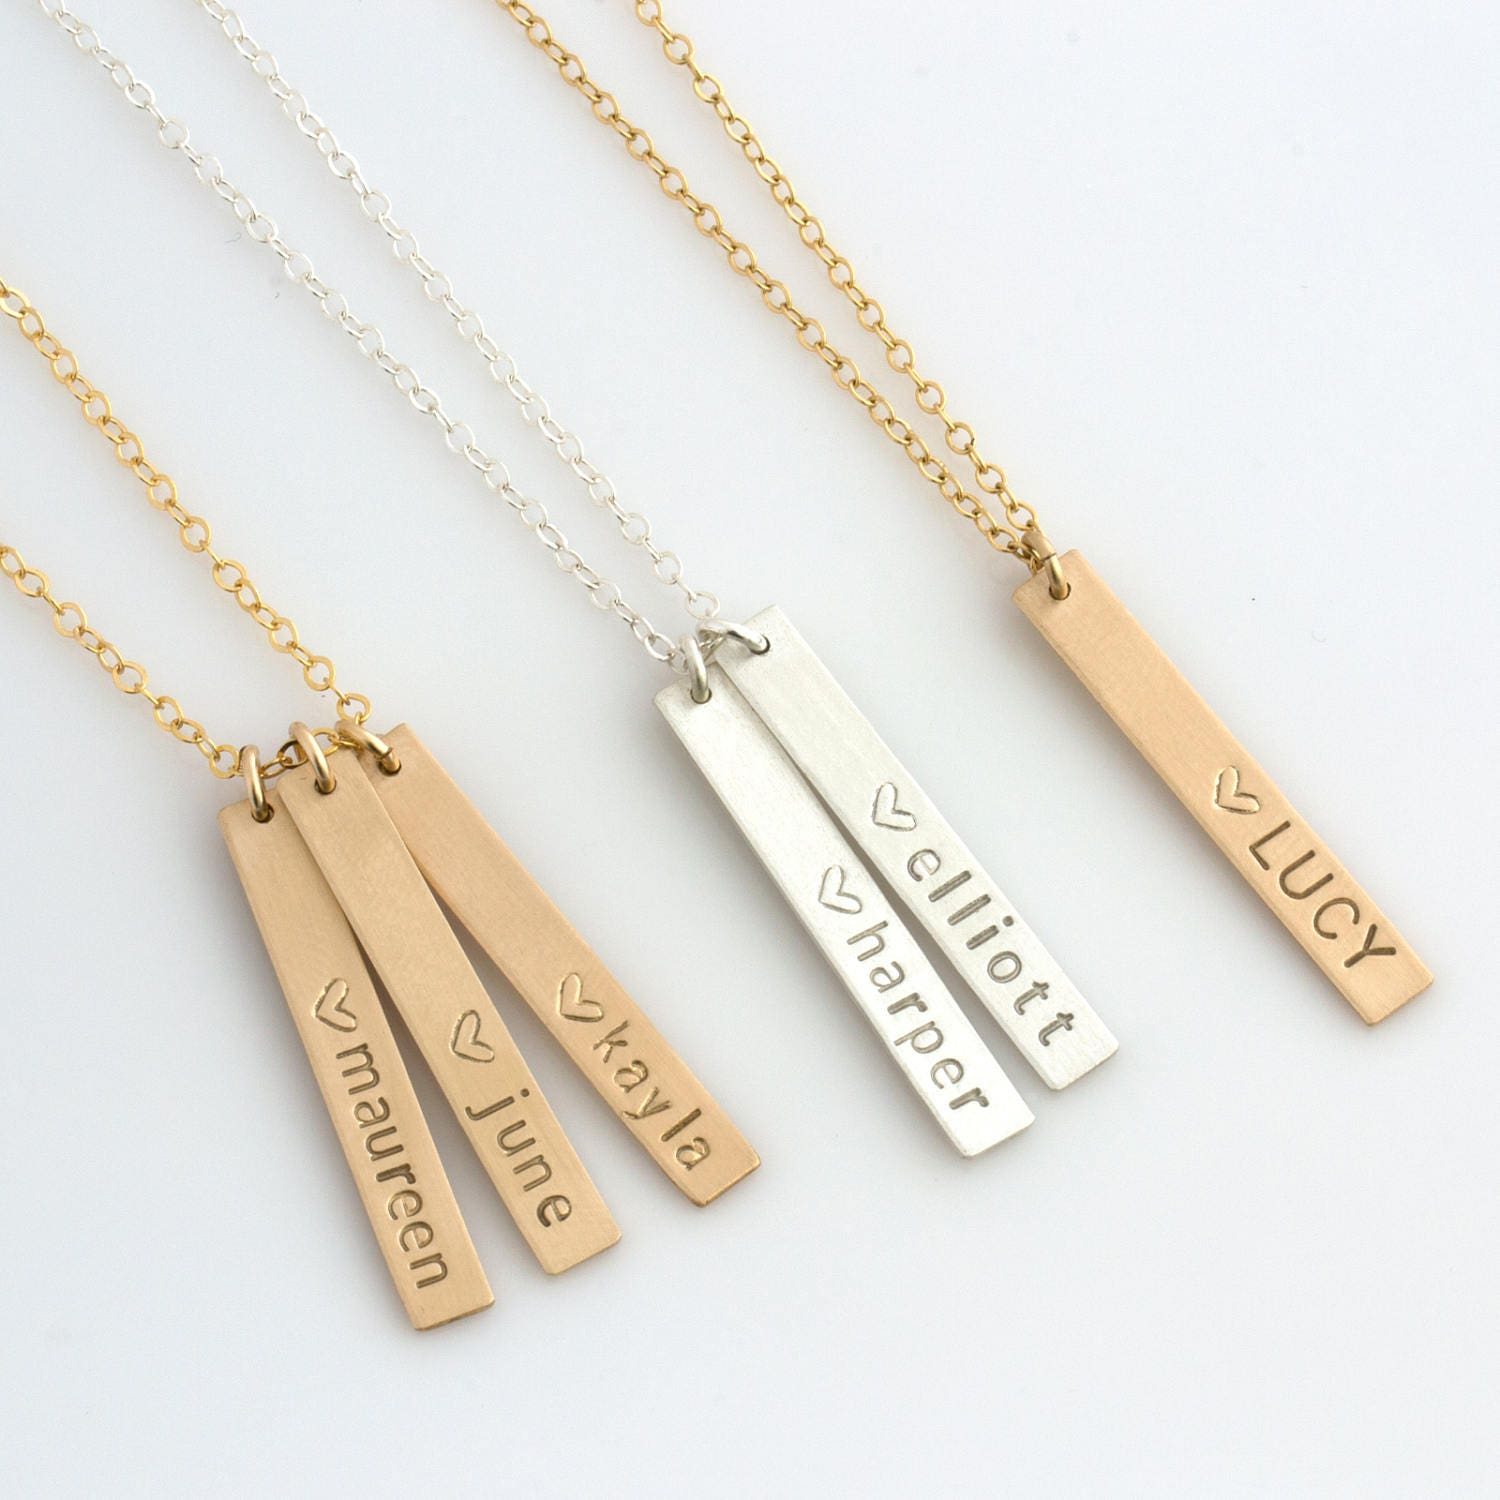 are russian personalised blanchett name best seller a why they necklace rings necklaces children ring stylerocks cate blog